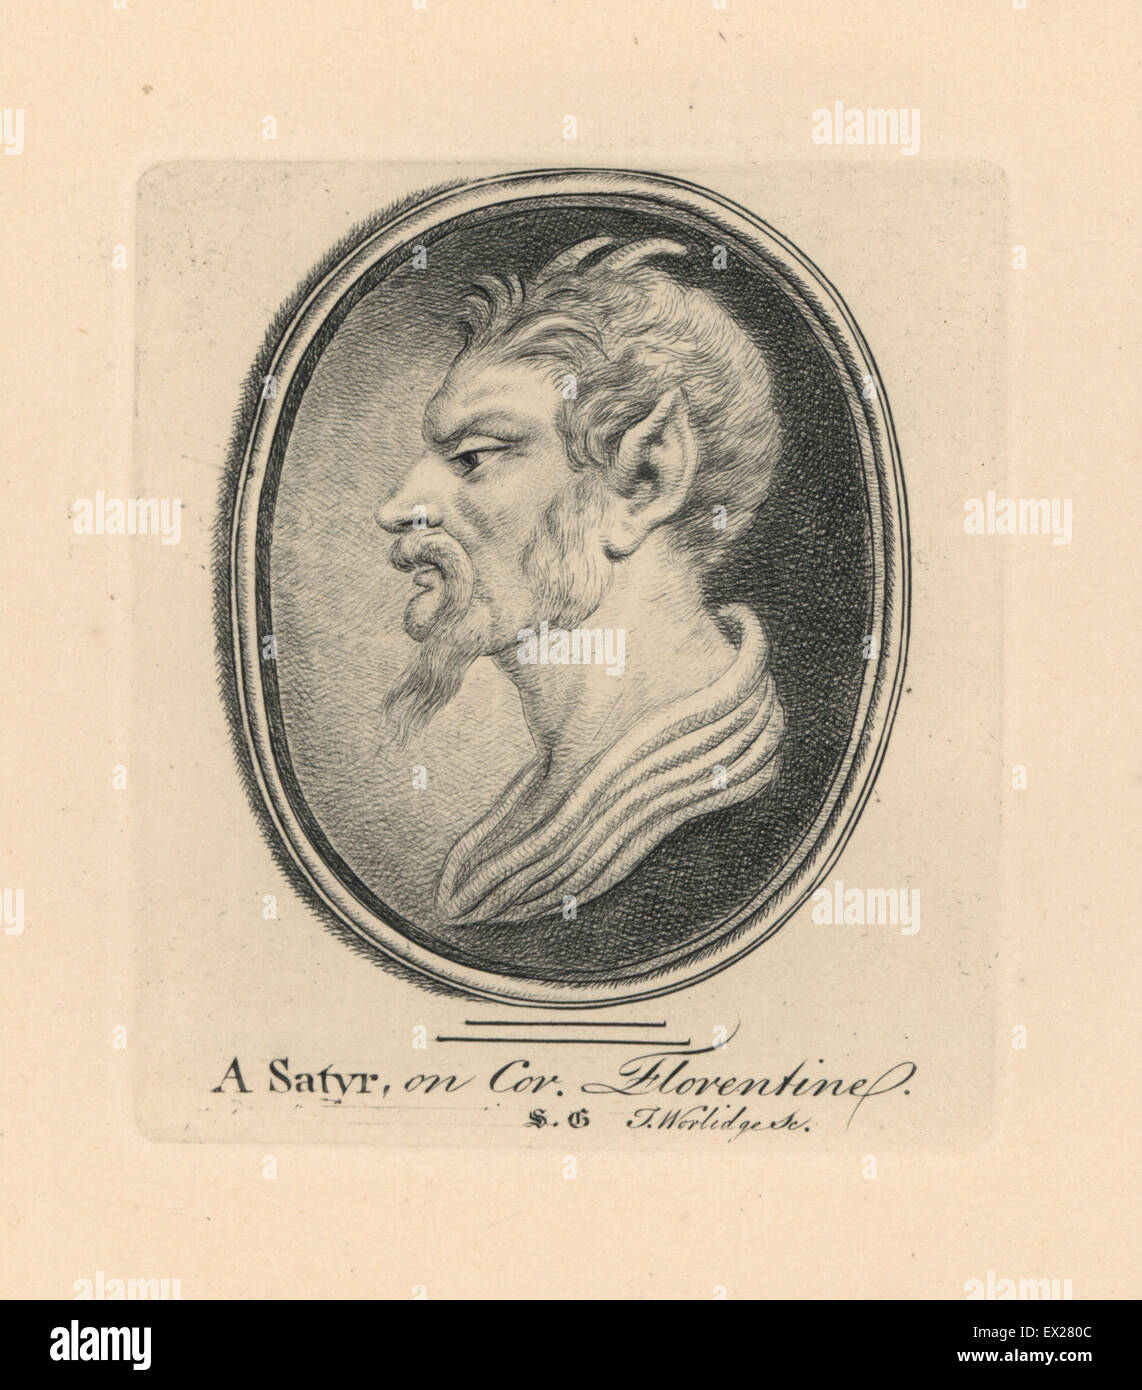 Portrait of a Satyr, with goat horns and pointed ears, on Florentine cornelian. Copperplate engraving by Thomas - Stock Image